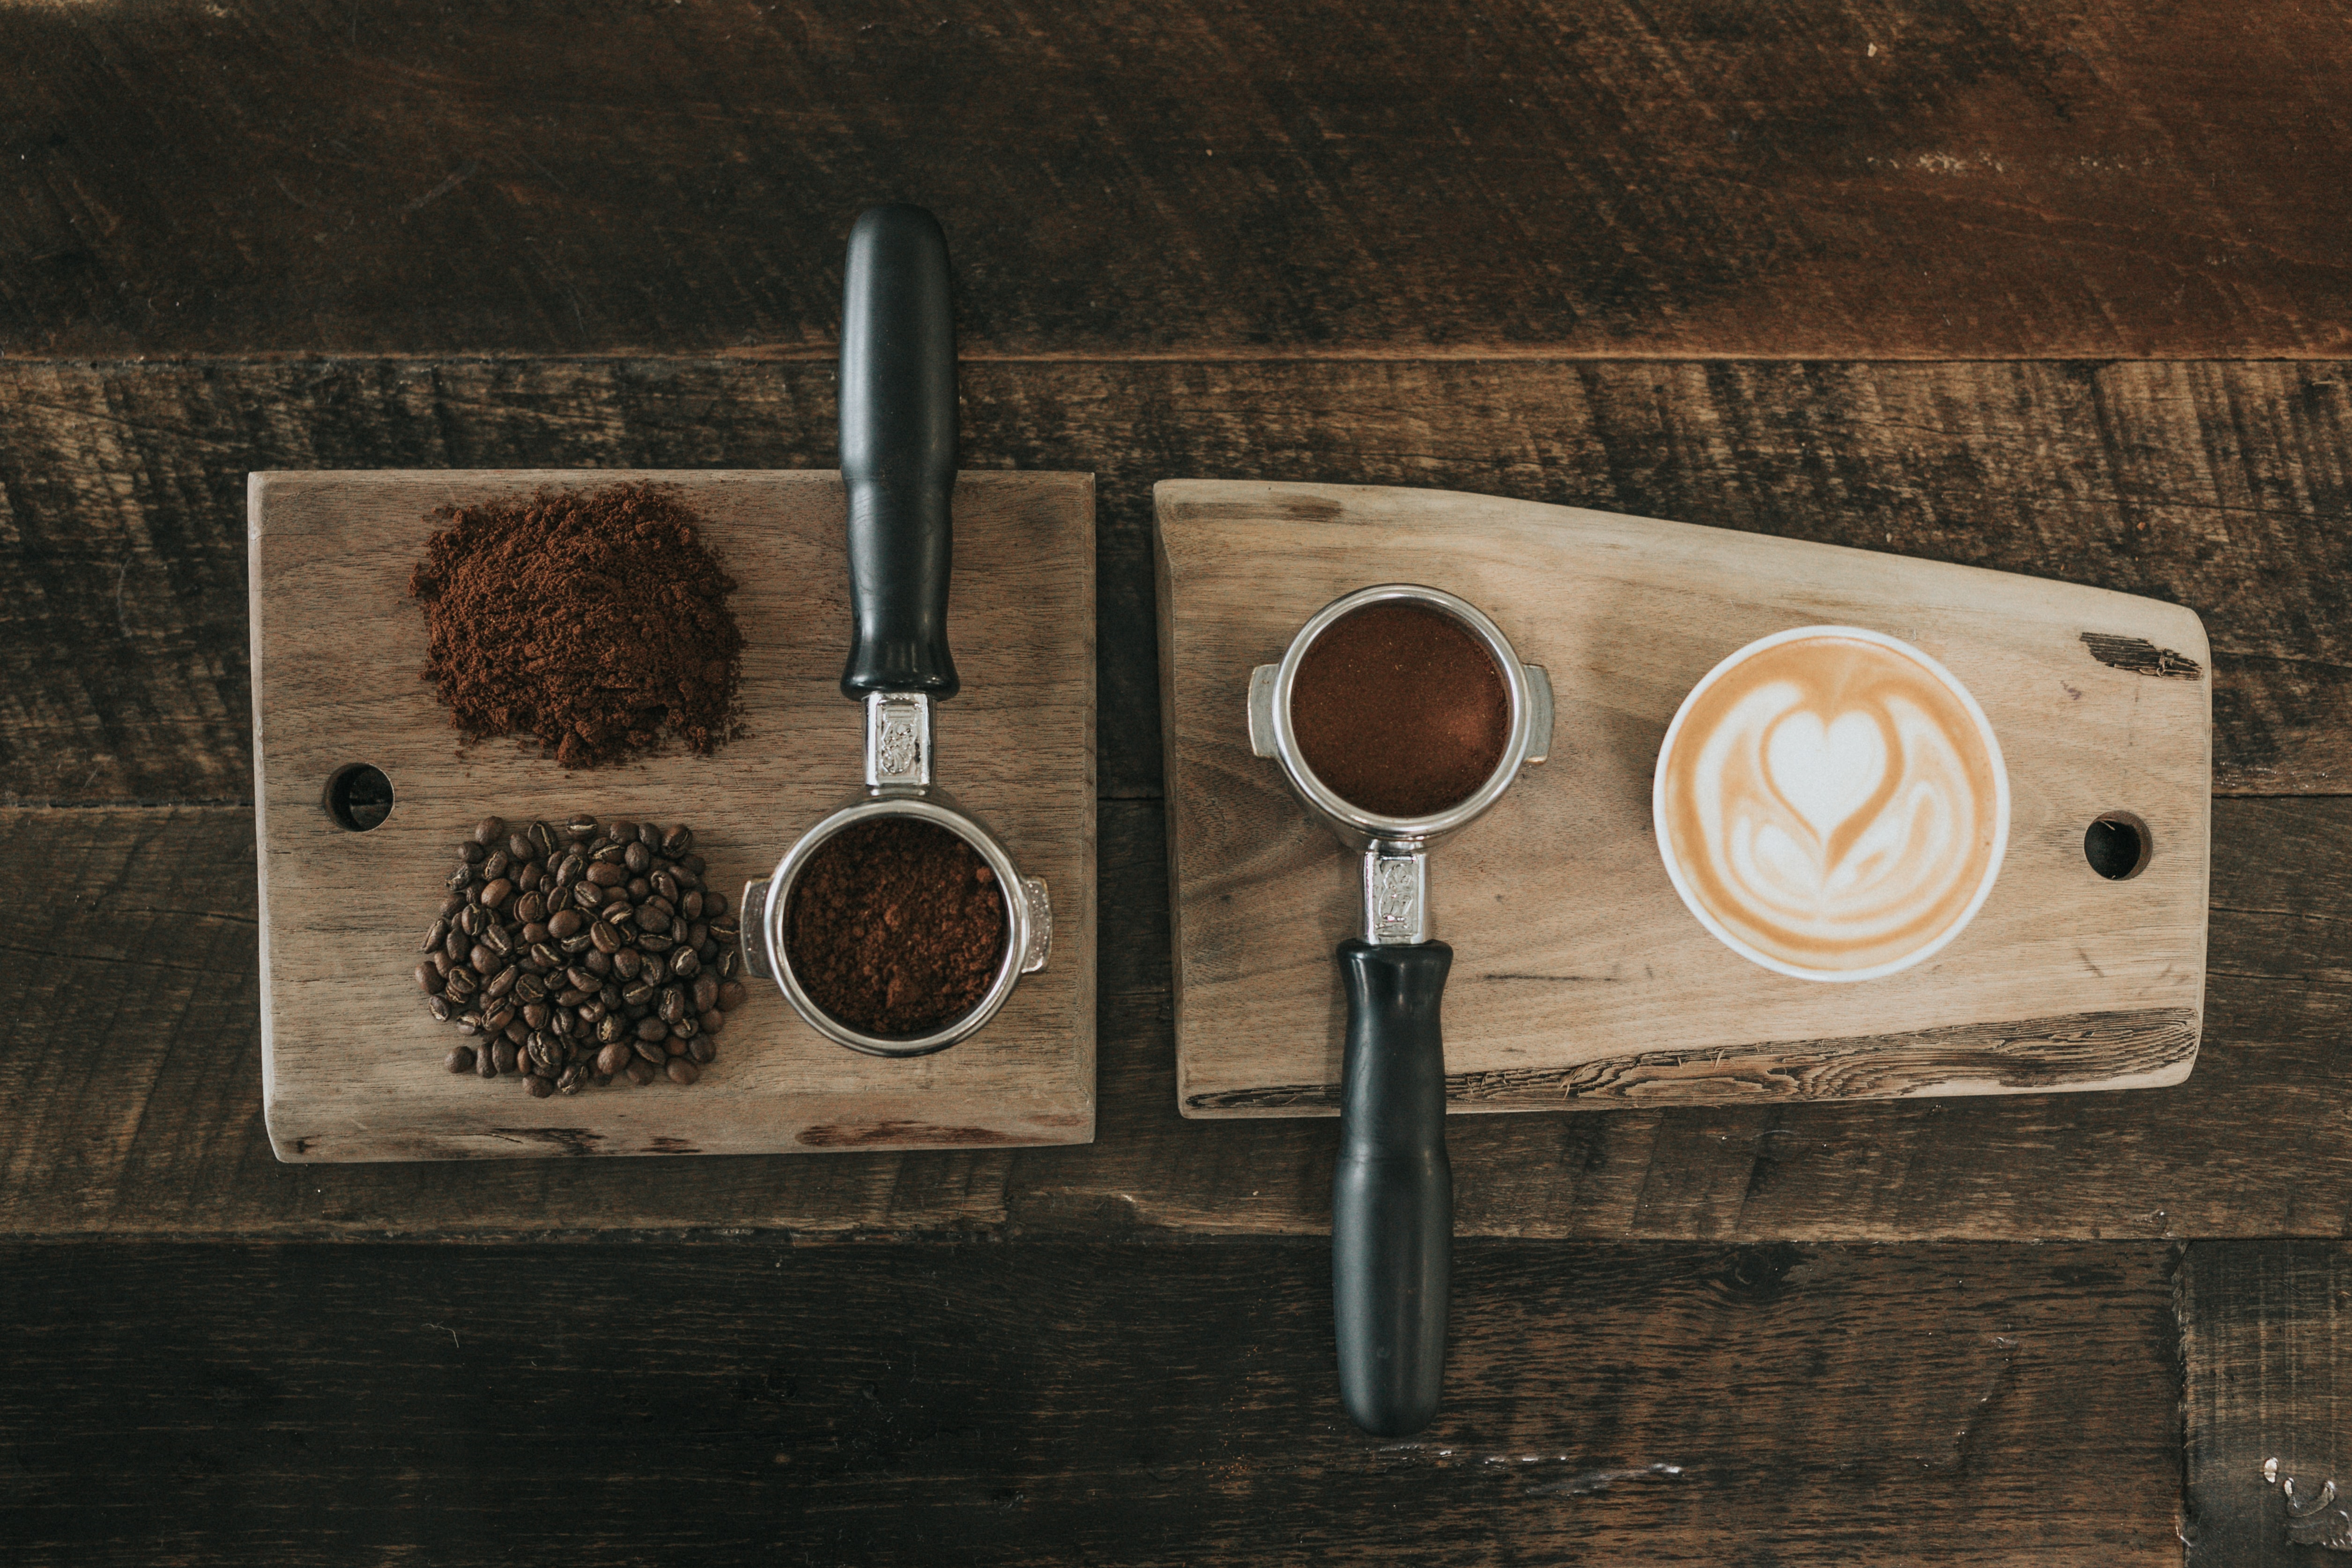 An overhead shot of two coffee machine portafilters next to coffee beans and a cup of coffee